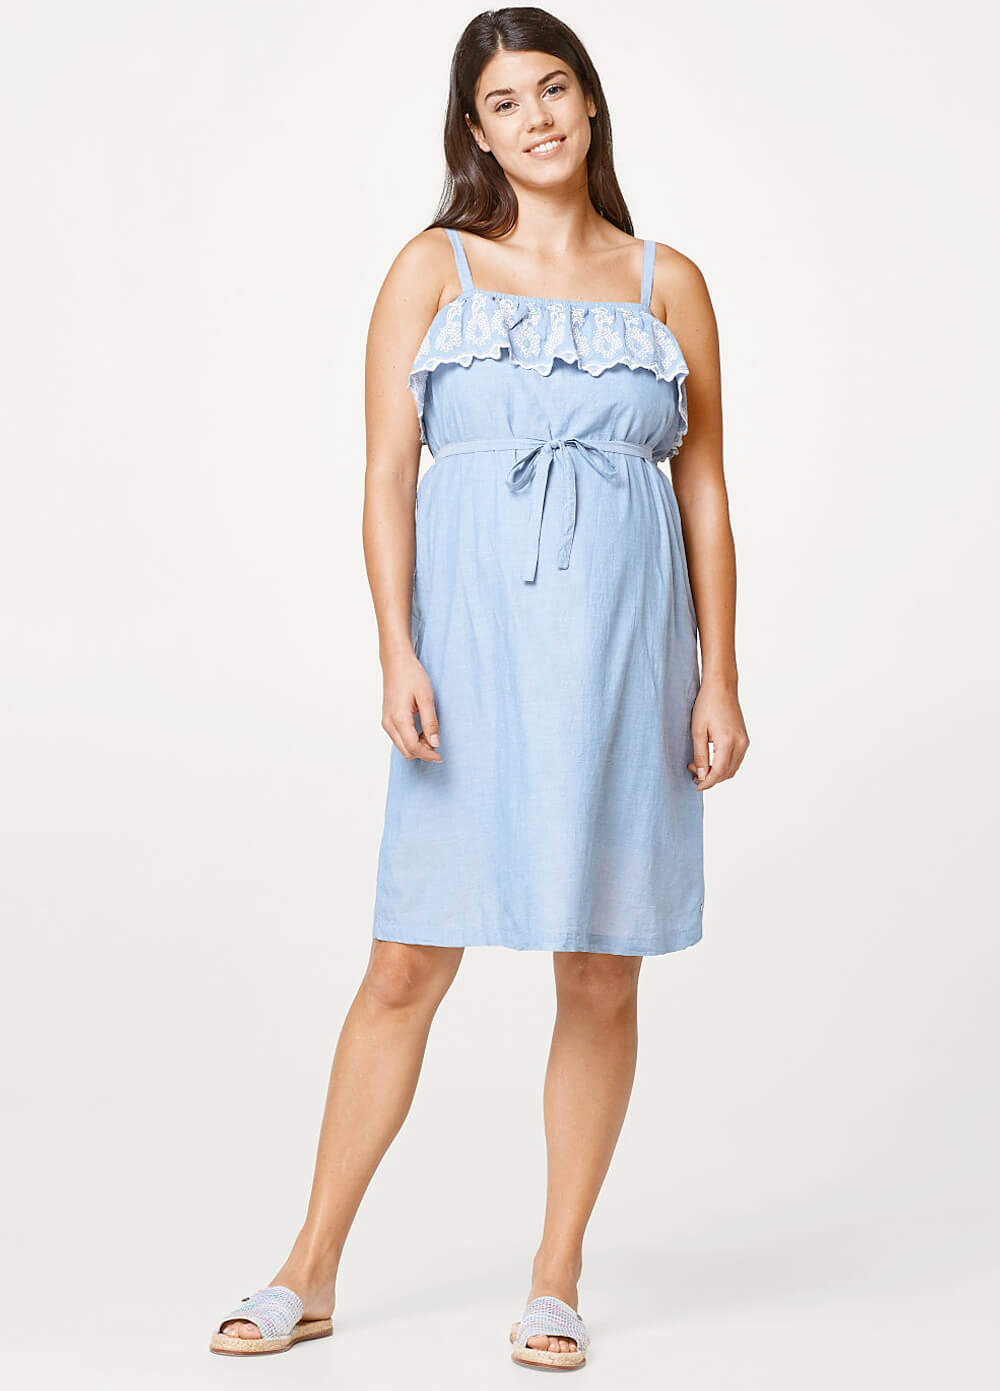 Embroidered Ruffle Maternity Dress in Blue by Esprit